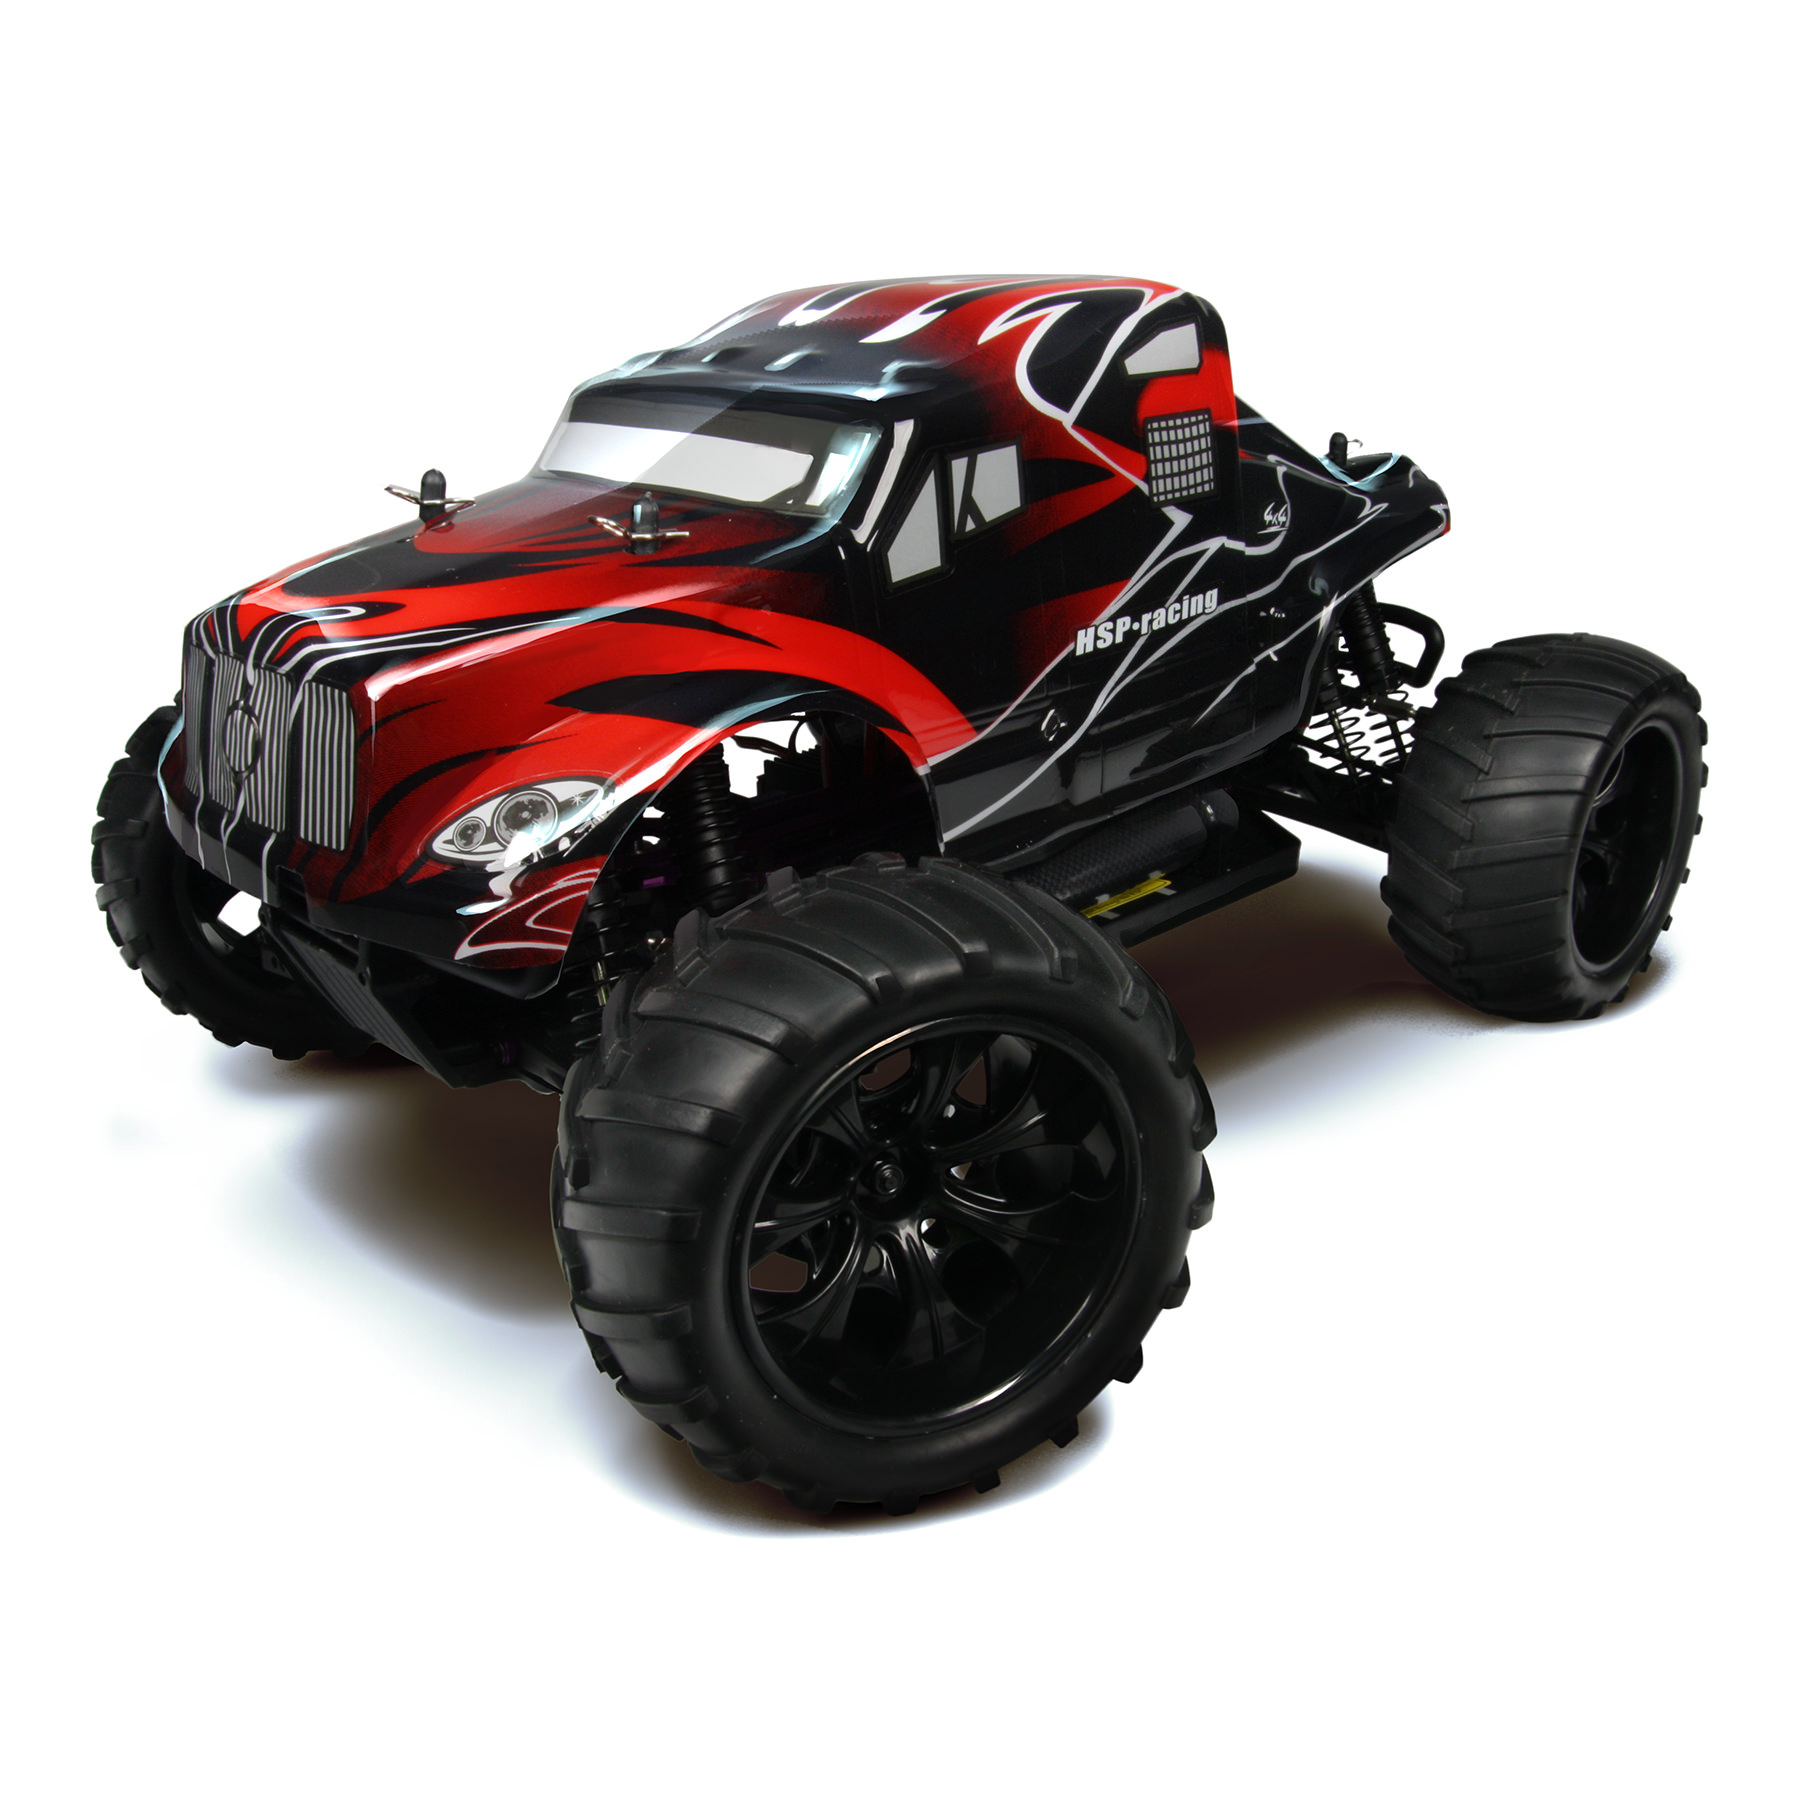 nitro rc vehicles with Hsp 94111 88033 1 10 Black Rc Monster Truck on JadaBigTimeMuscle2006ChevyCamaroElectricRTRRCCar furthermore Hsp 94111 88033 1 10 Black Rc Monster Truck likewise 101401 also Is This Your Dream Job Test Drive Of The Original The Fast The Furious Cars Doms Charger Brians Supra besides FORD PINTO classic hot rod rods drag racing race toy g.